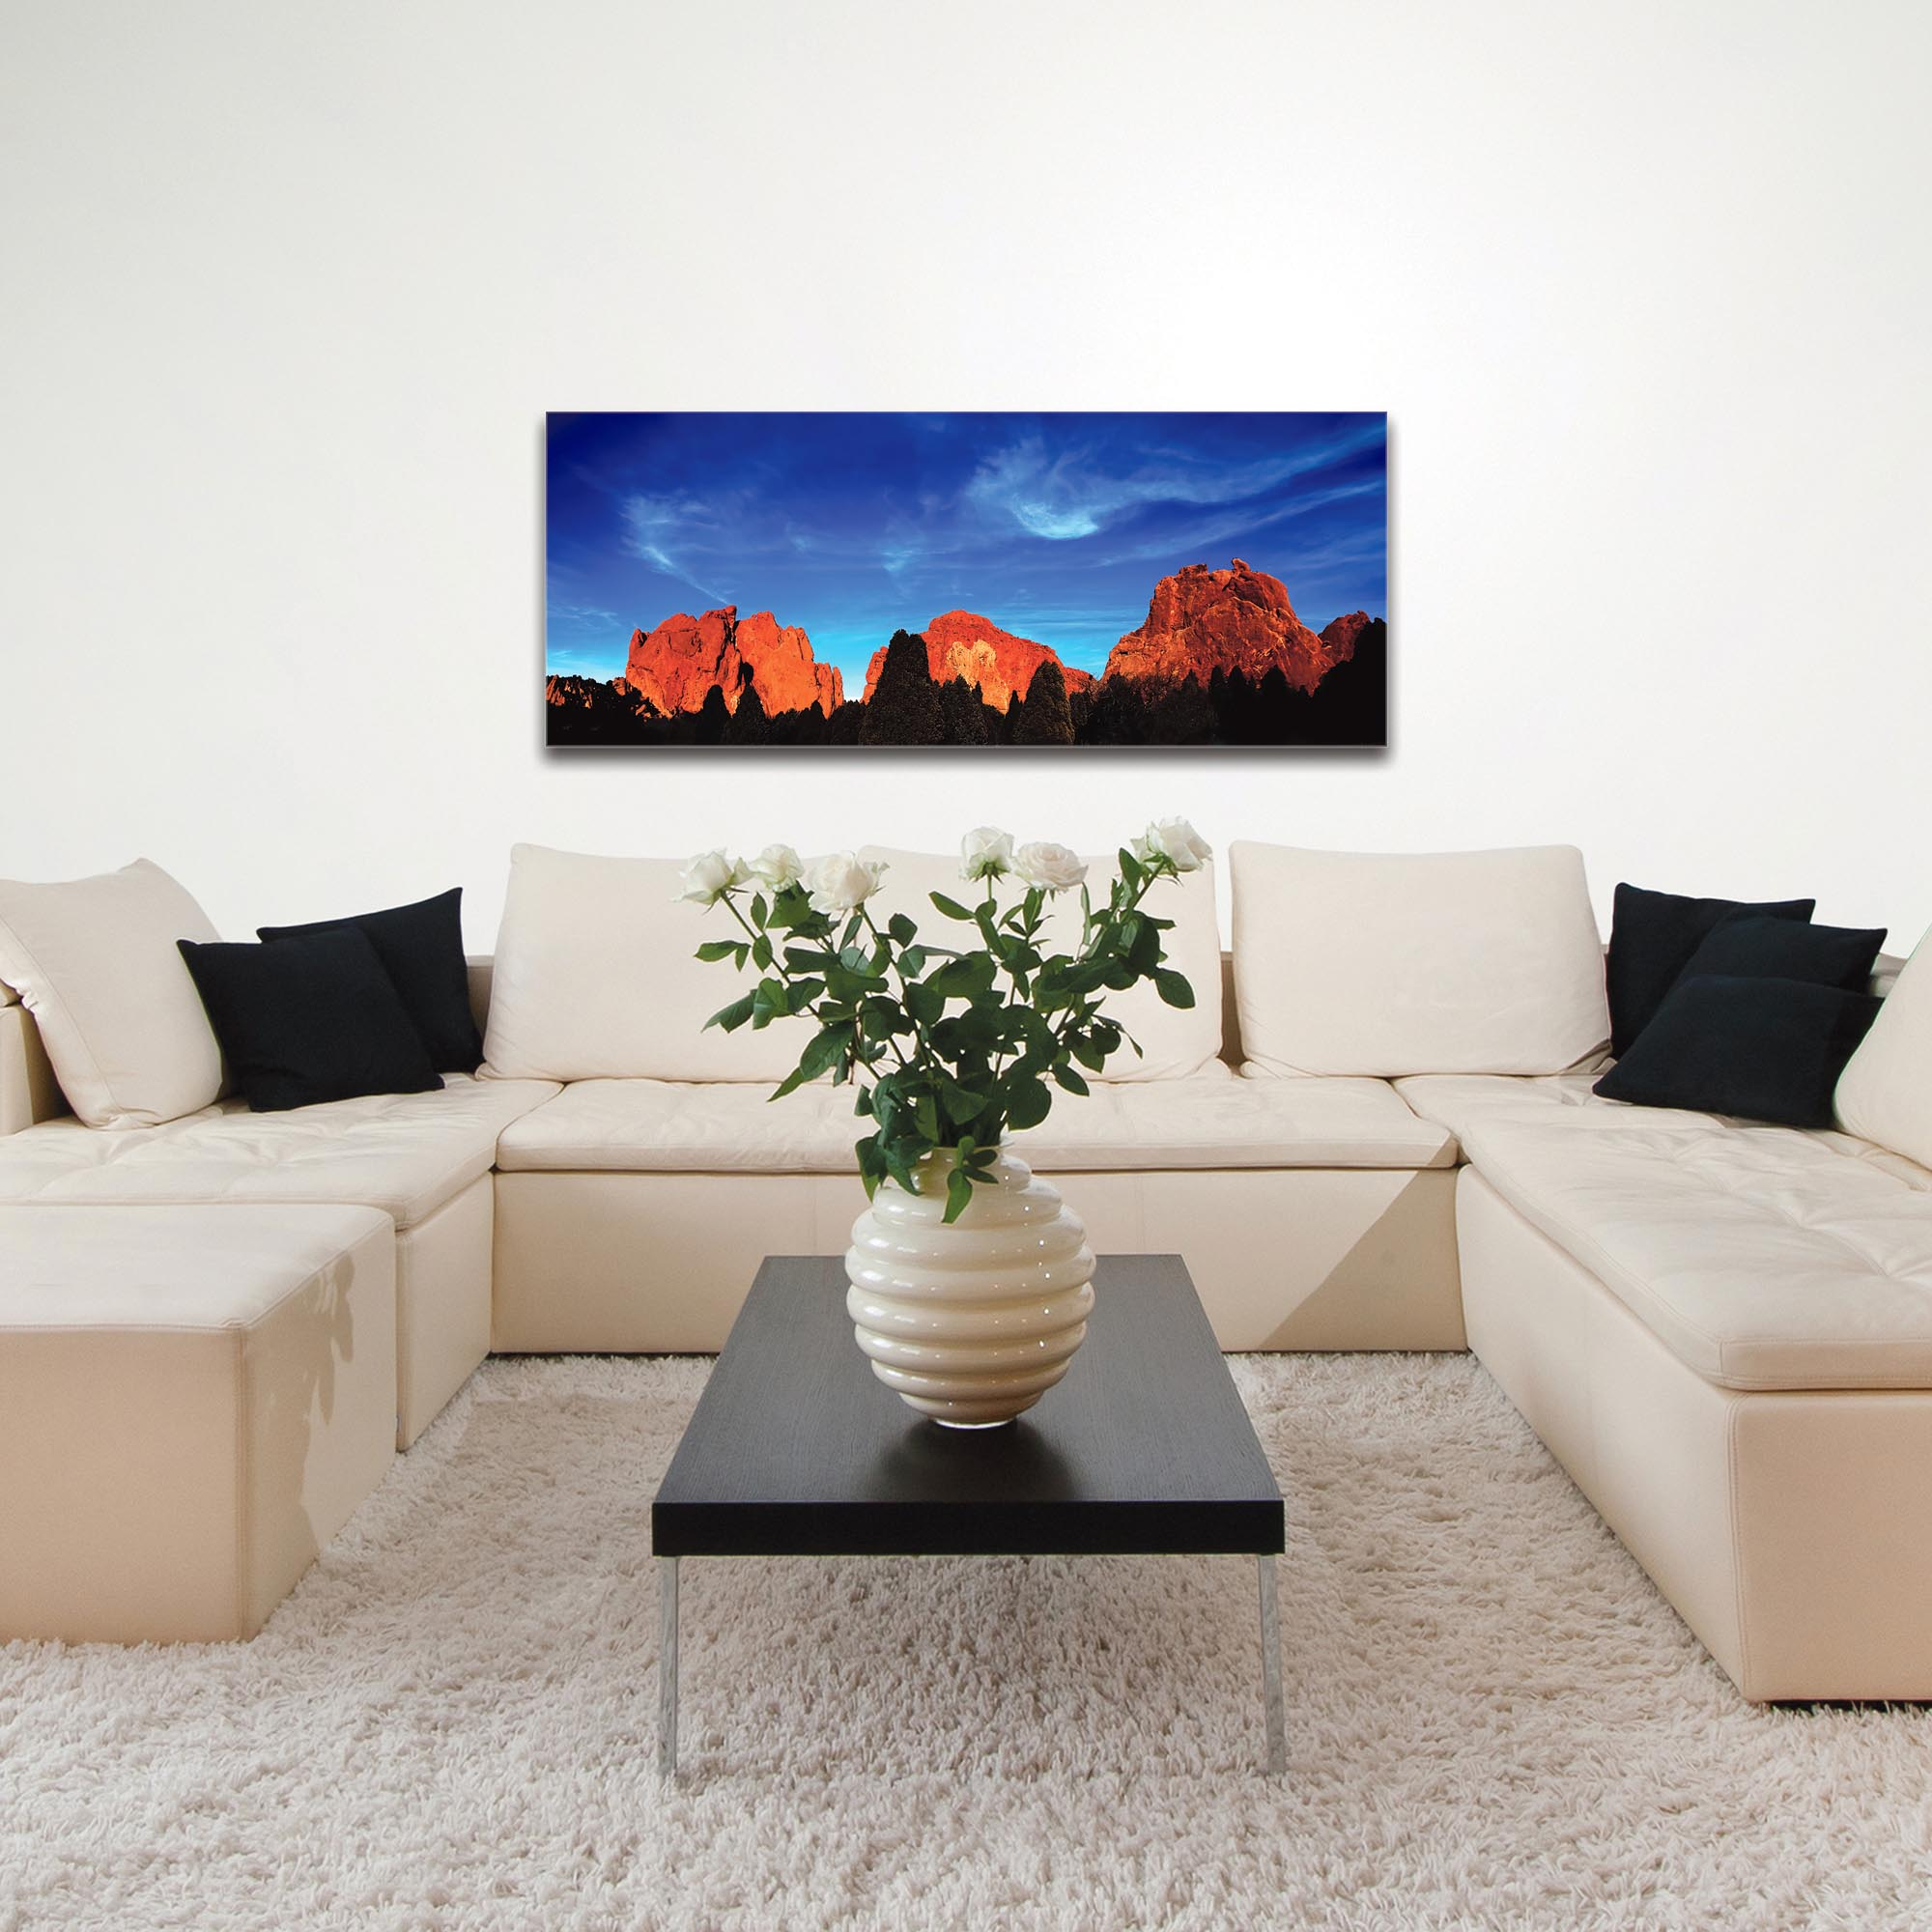 Landscape Photography 'Rocky Towers' - Desert Mountains Art on Metal or Plexiglass - Image 3